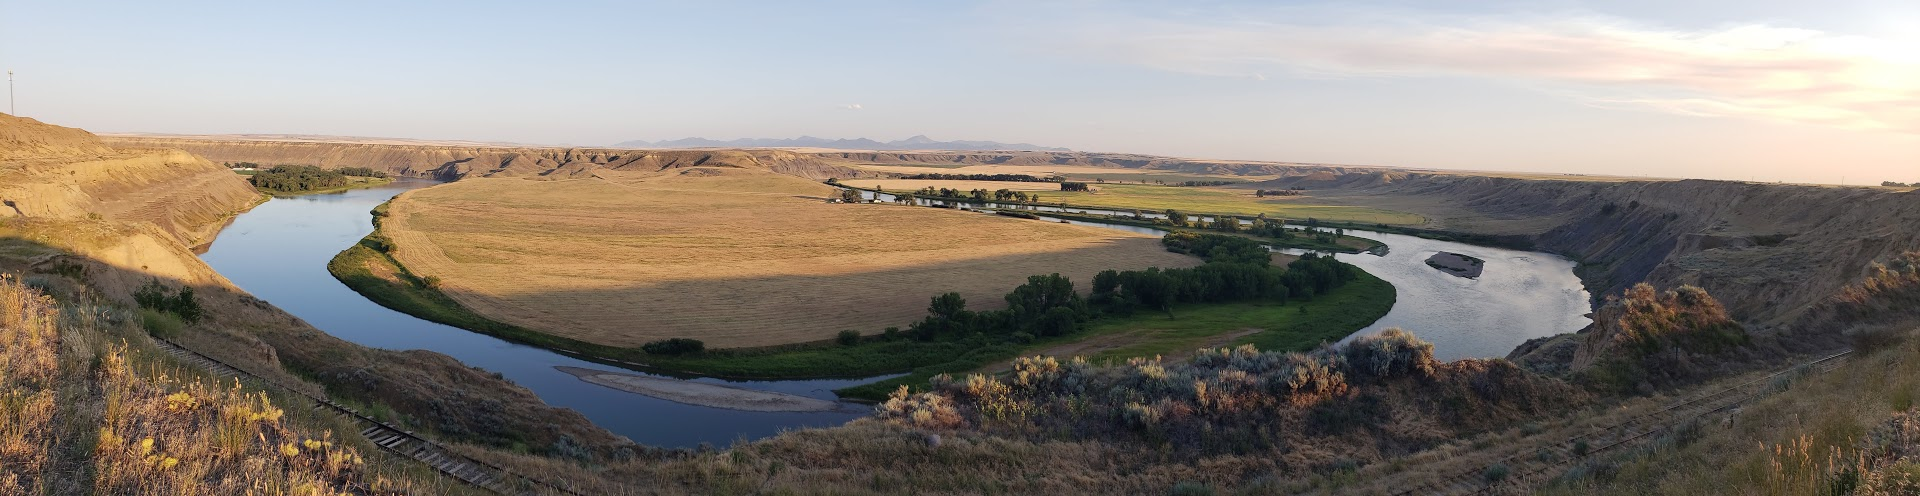 The winding Missouri River entering into Fort Benton